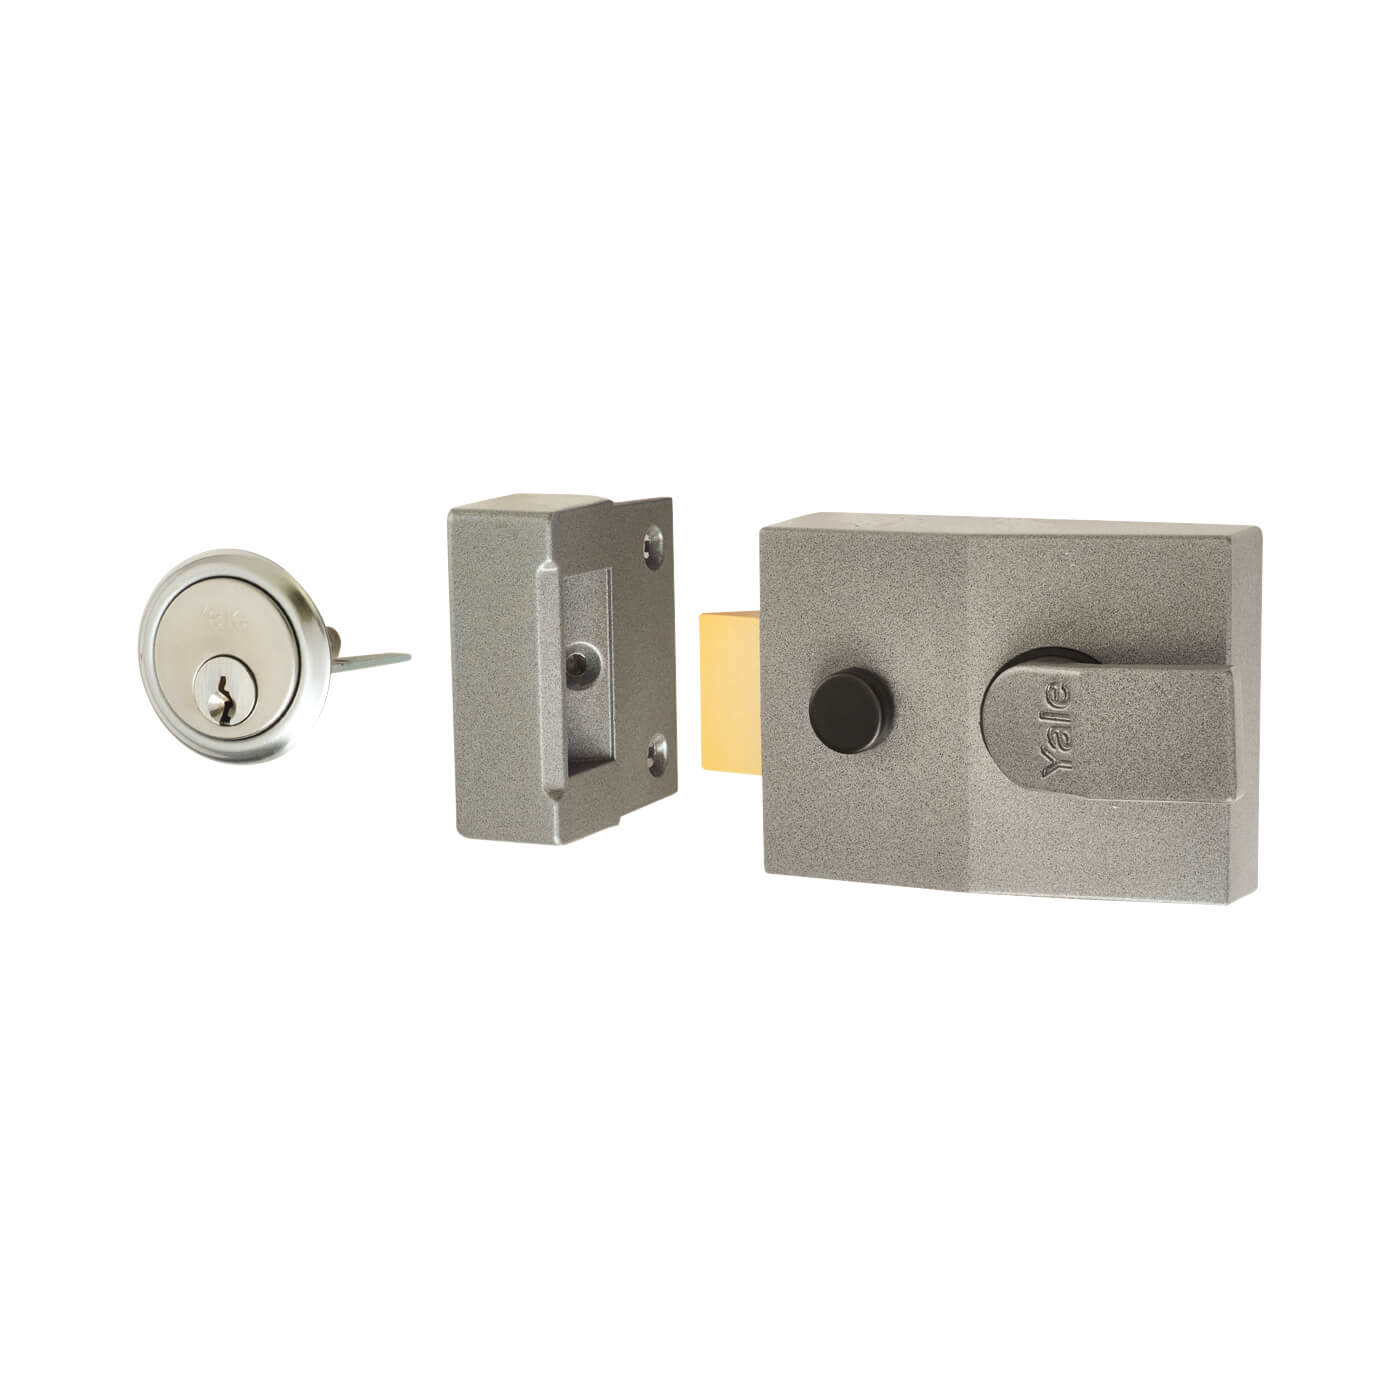 Yale® 89 Double Locking Nightlatch - 60mm Backset - Grey Case/Satin Chrome Cylinder)